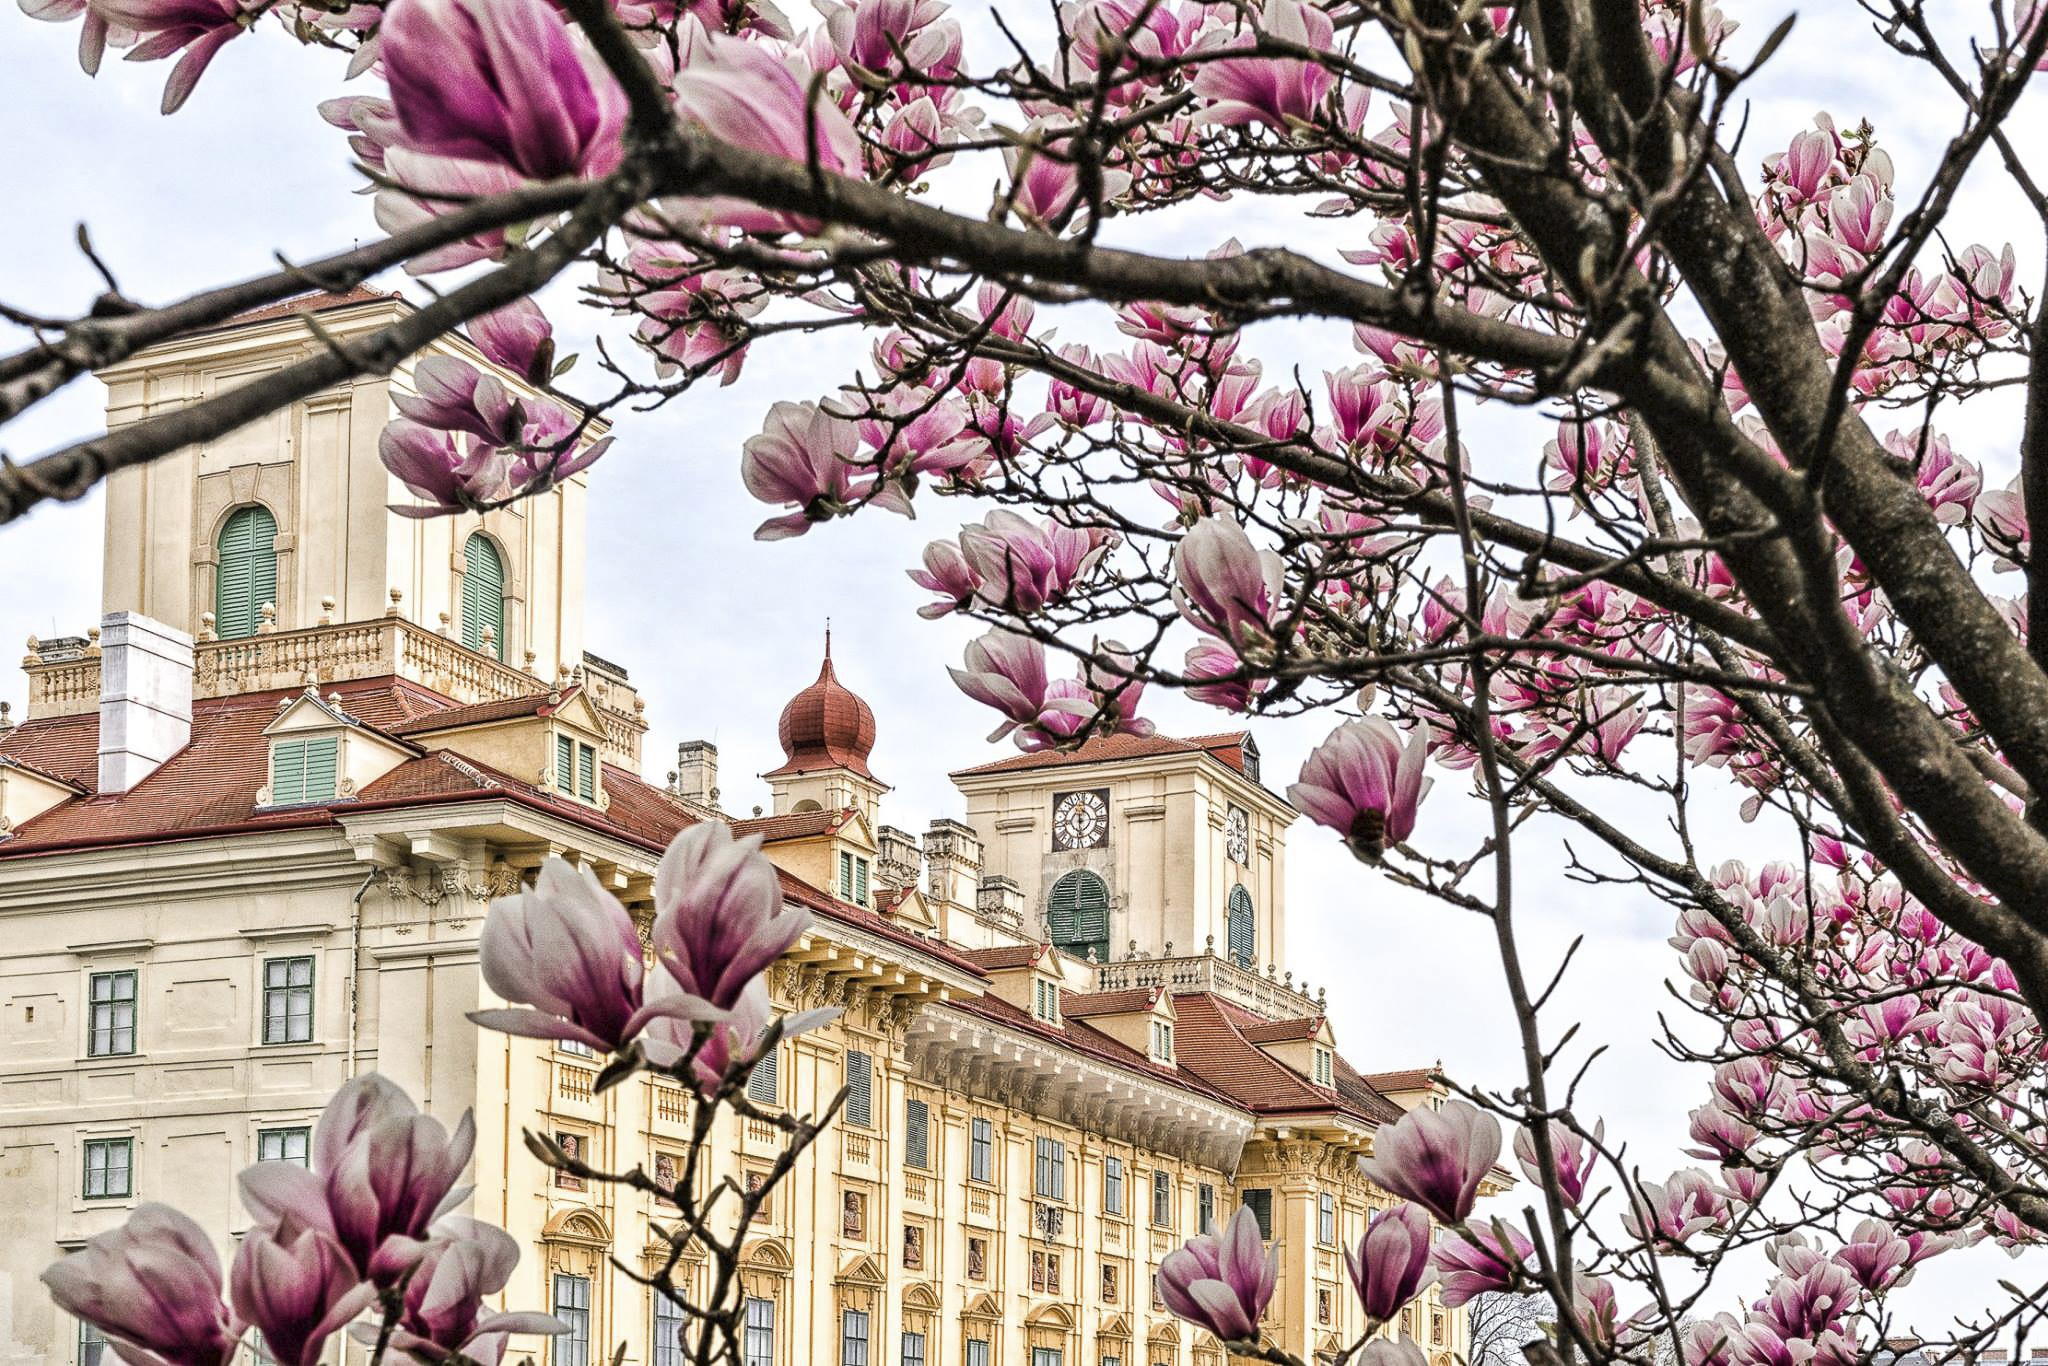 Blooming magnolias in front of Esterházy Palace